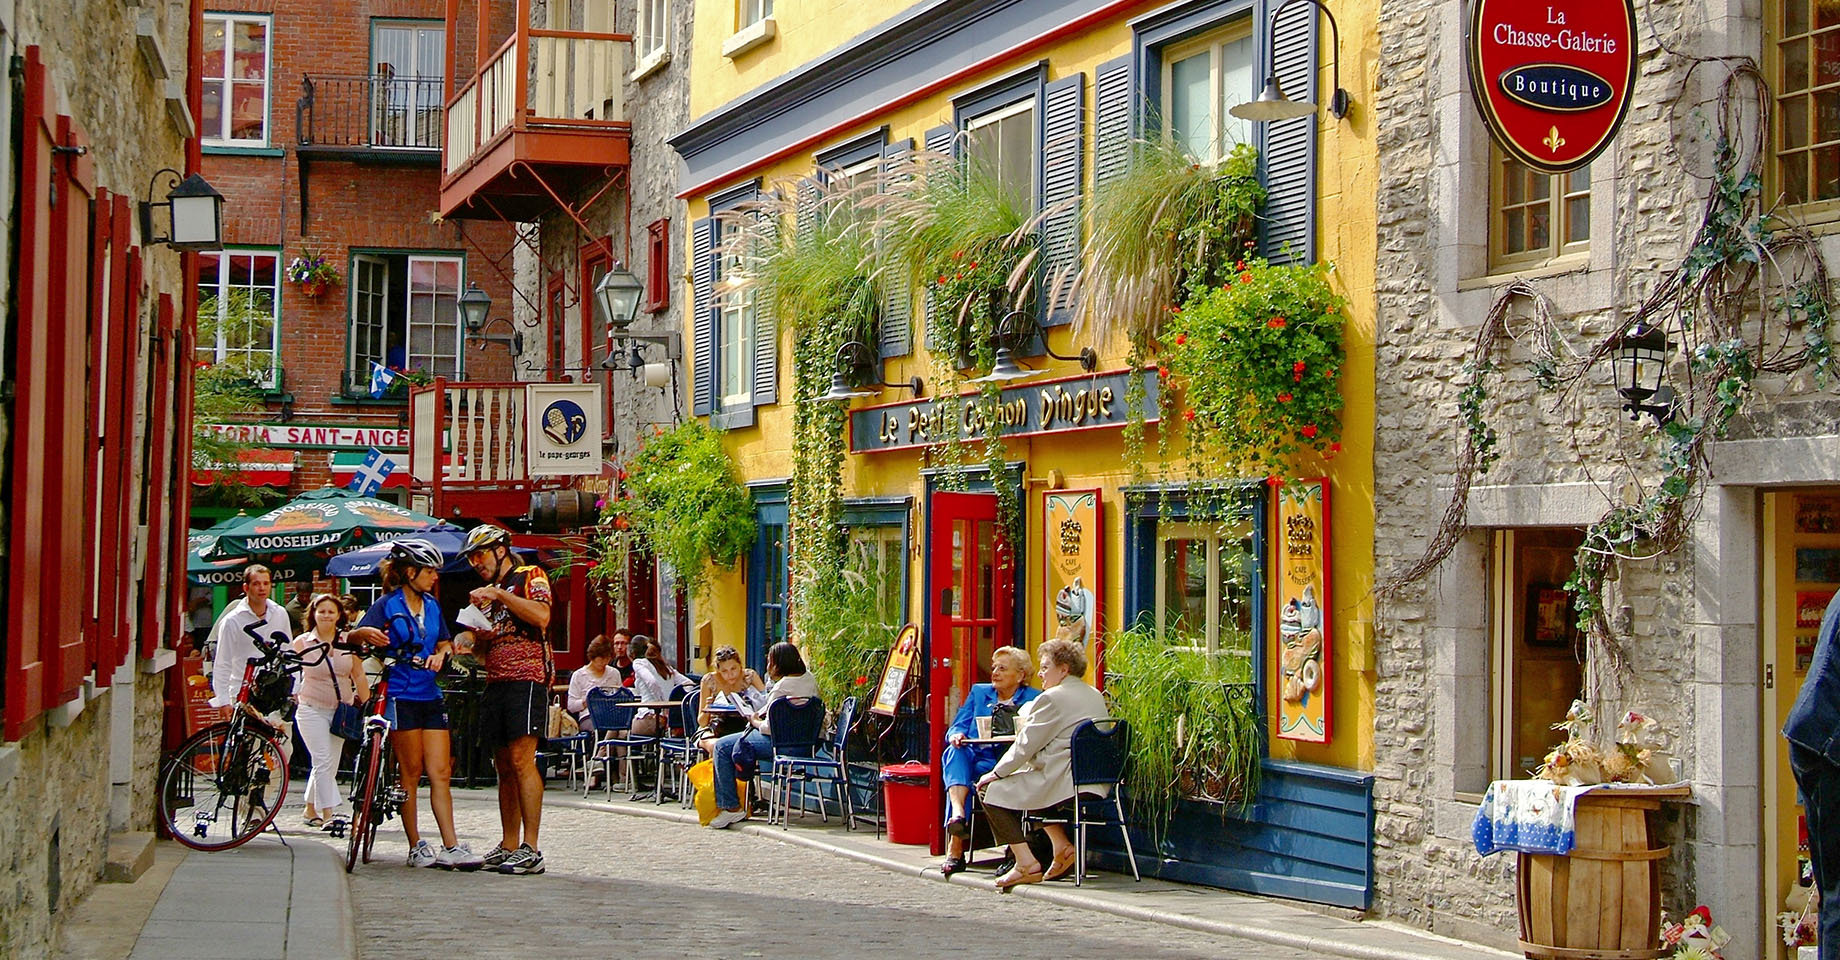 An Old Quebec cobble-stone street